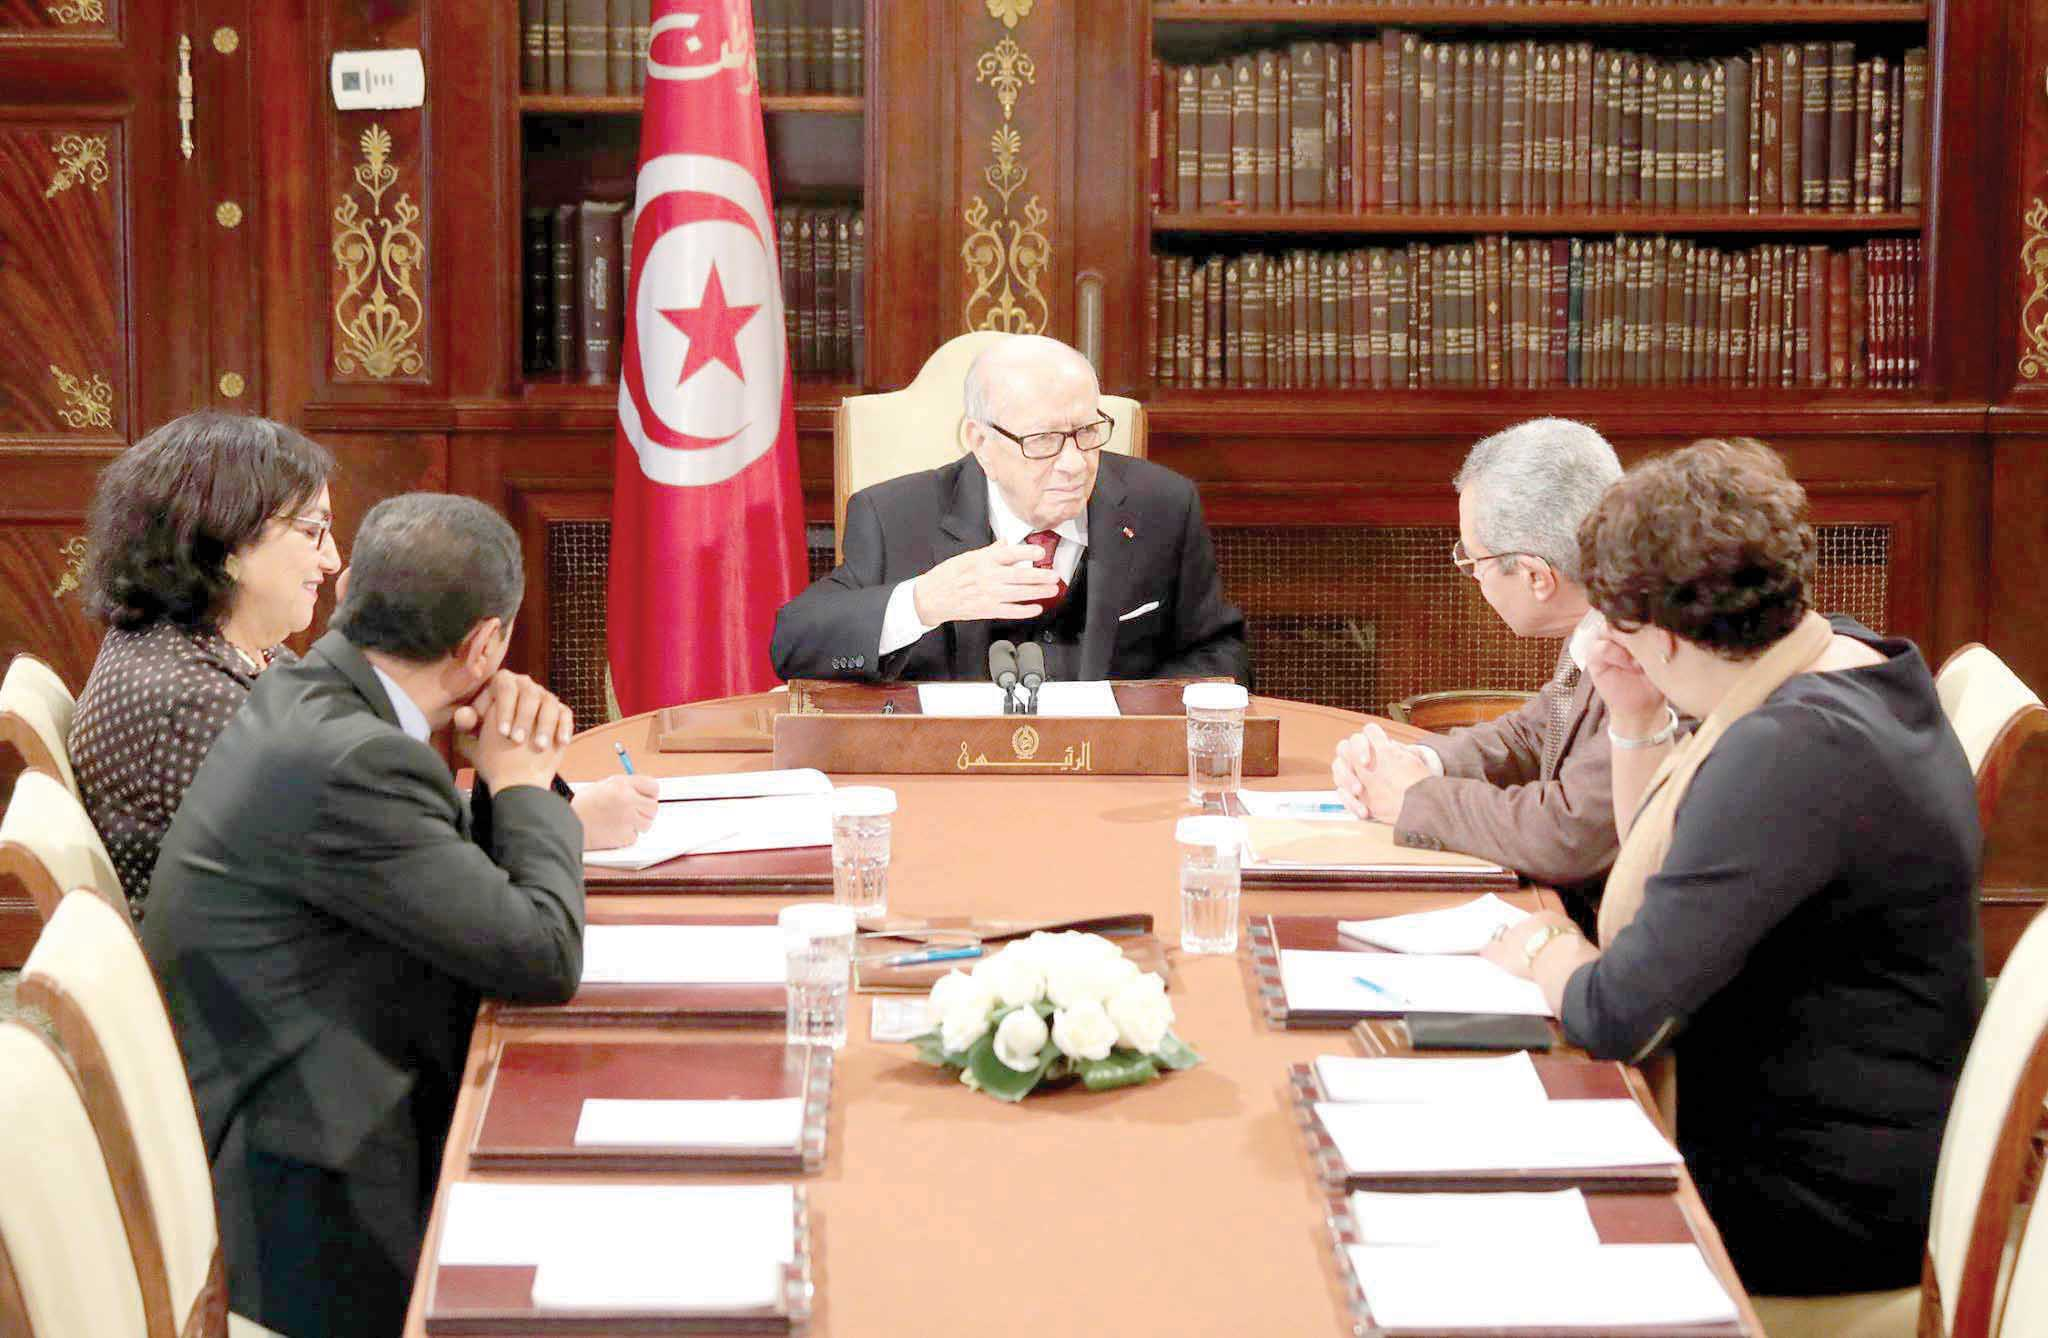 Tunisian President Beji Caid Essebsi (C) meets with a delegation from the Individual Freedoms and Equality Commission, headed by feminist lawyer and parliament member Bochra Belhaj Hmida (L), at the Presidential Palace in Carthage. (Tunisian Presidency)